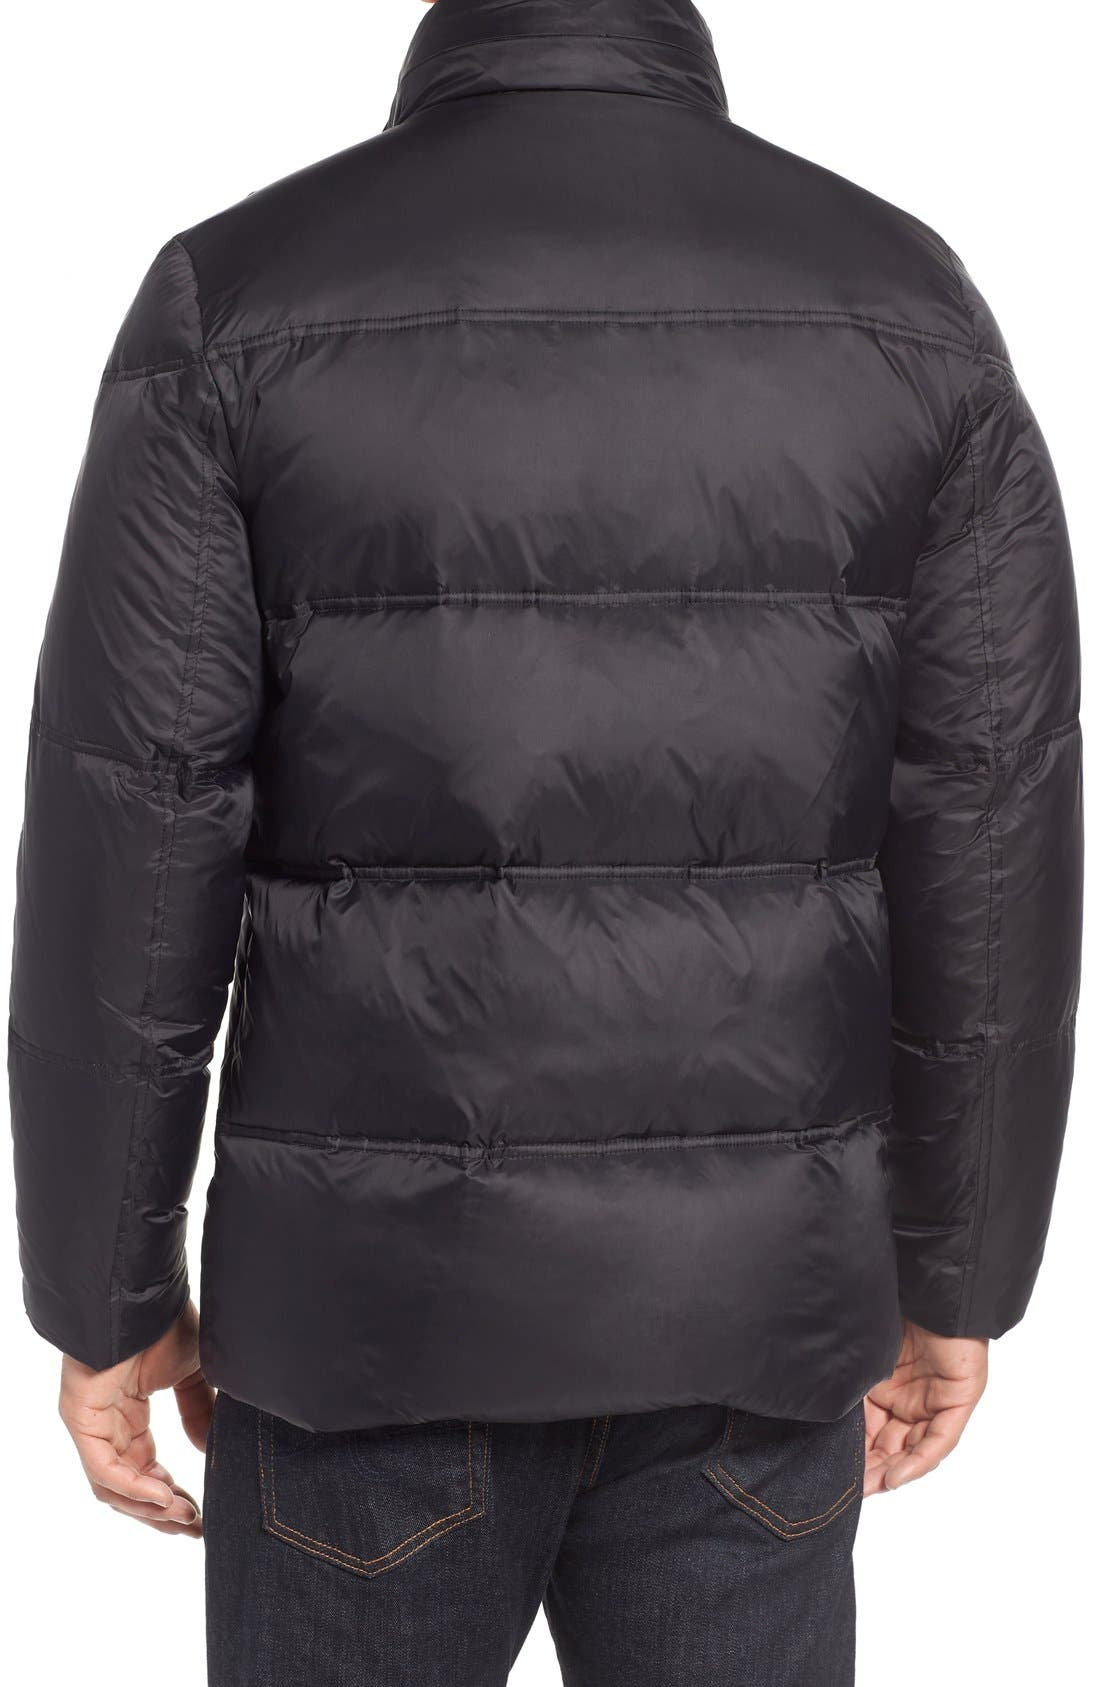 Quilted Jacket with Convertible Neck Pillow,                             Alternate thumbnail 2, color,                             Black